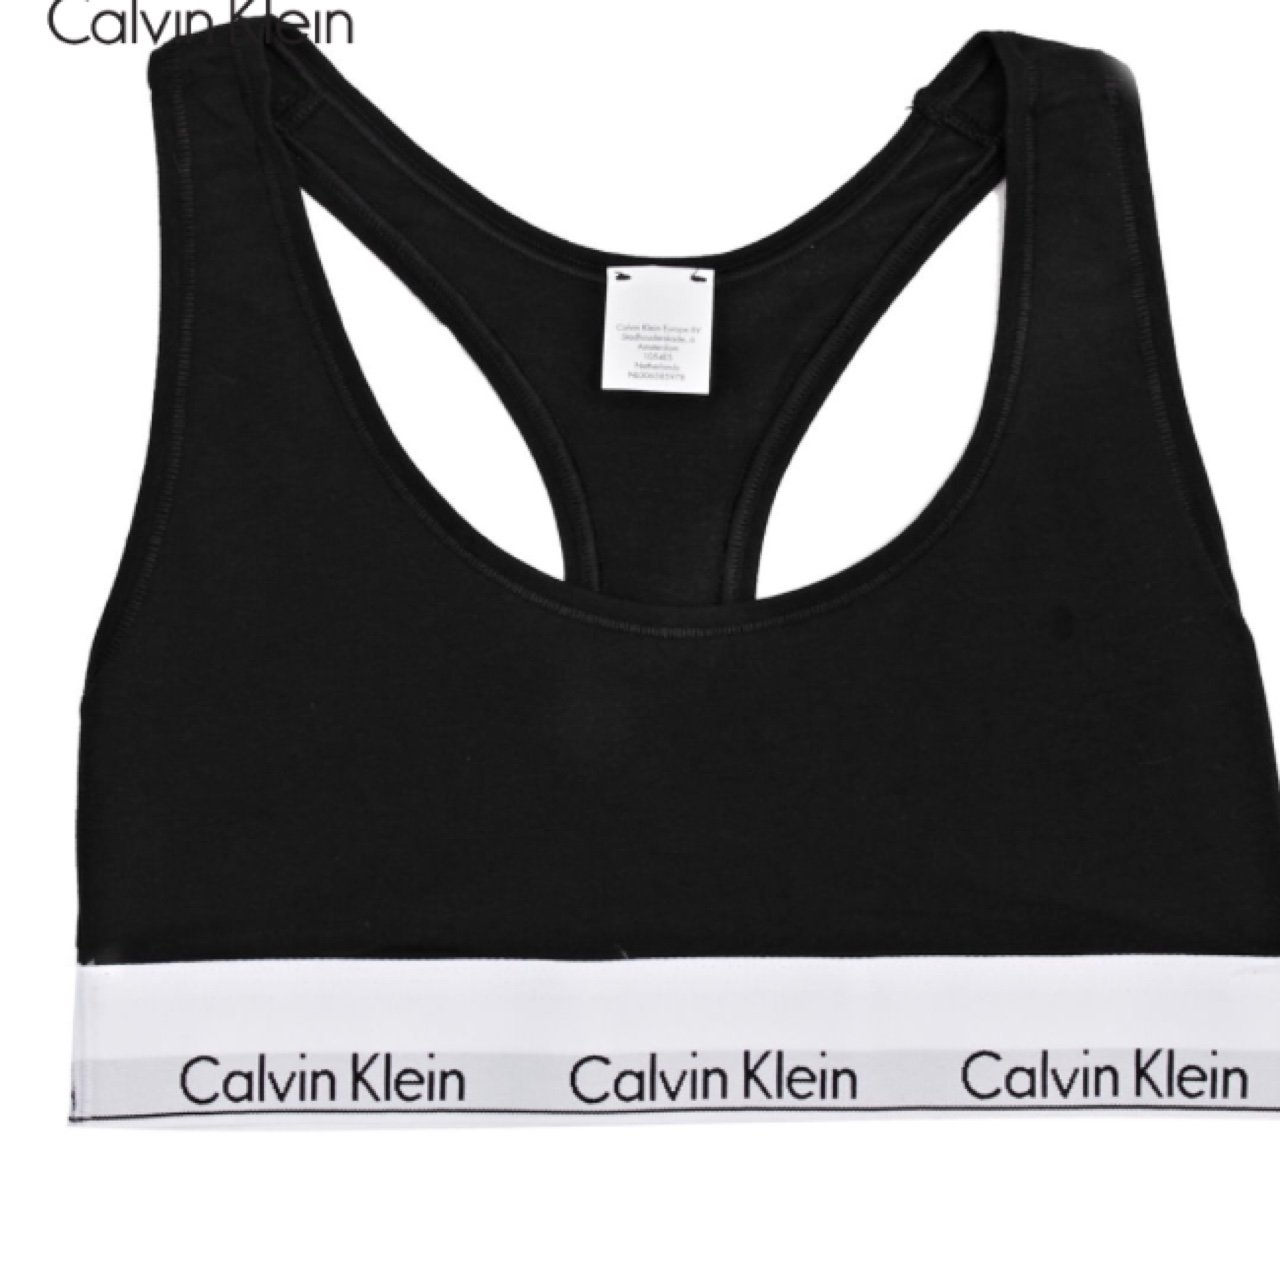 ba3288bec2  teiganwilkins. 3 years ago. United Kingdom. Black Calvin Klein sports bra.  Size S. Perfect condition- never ...